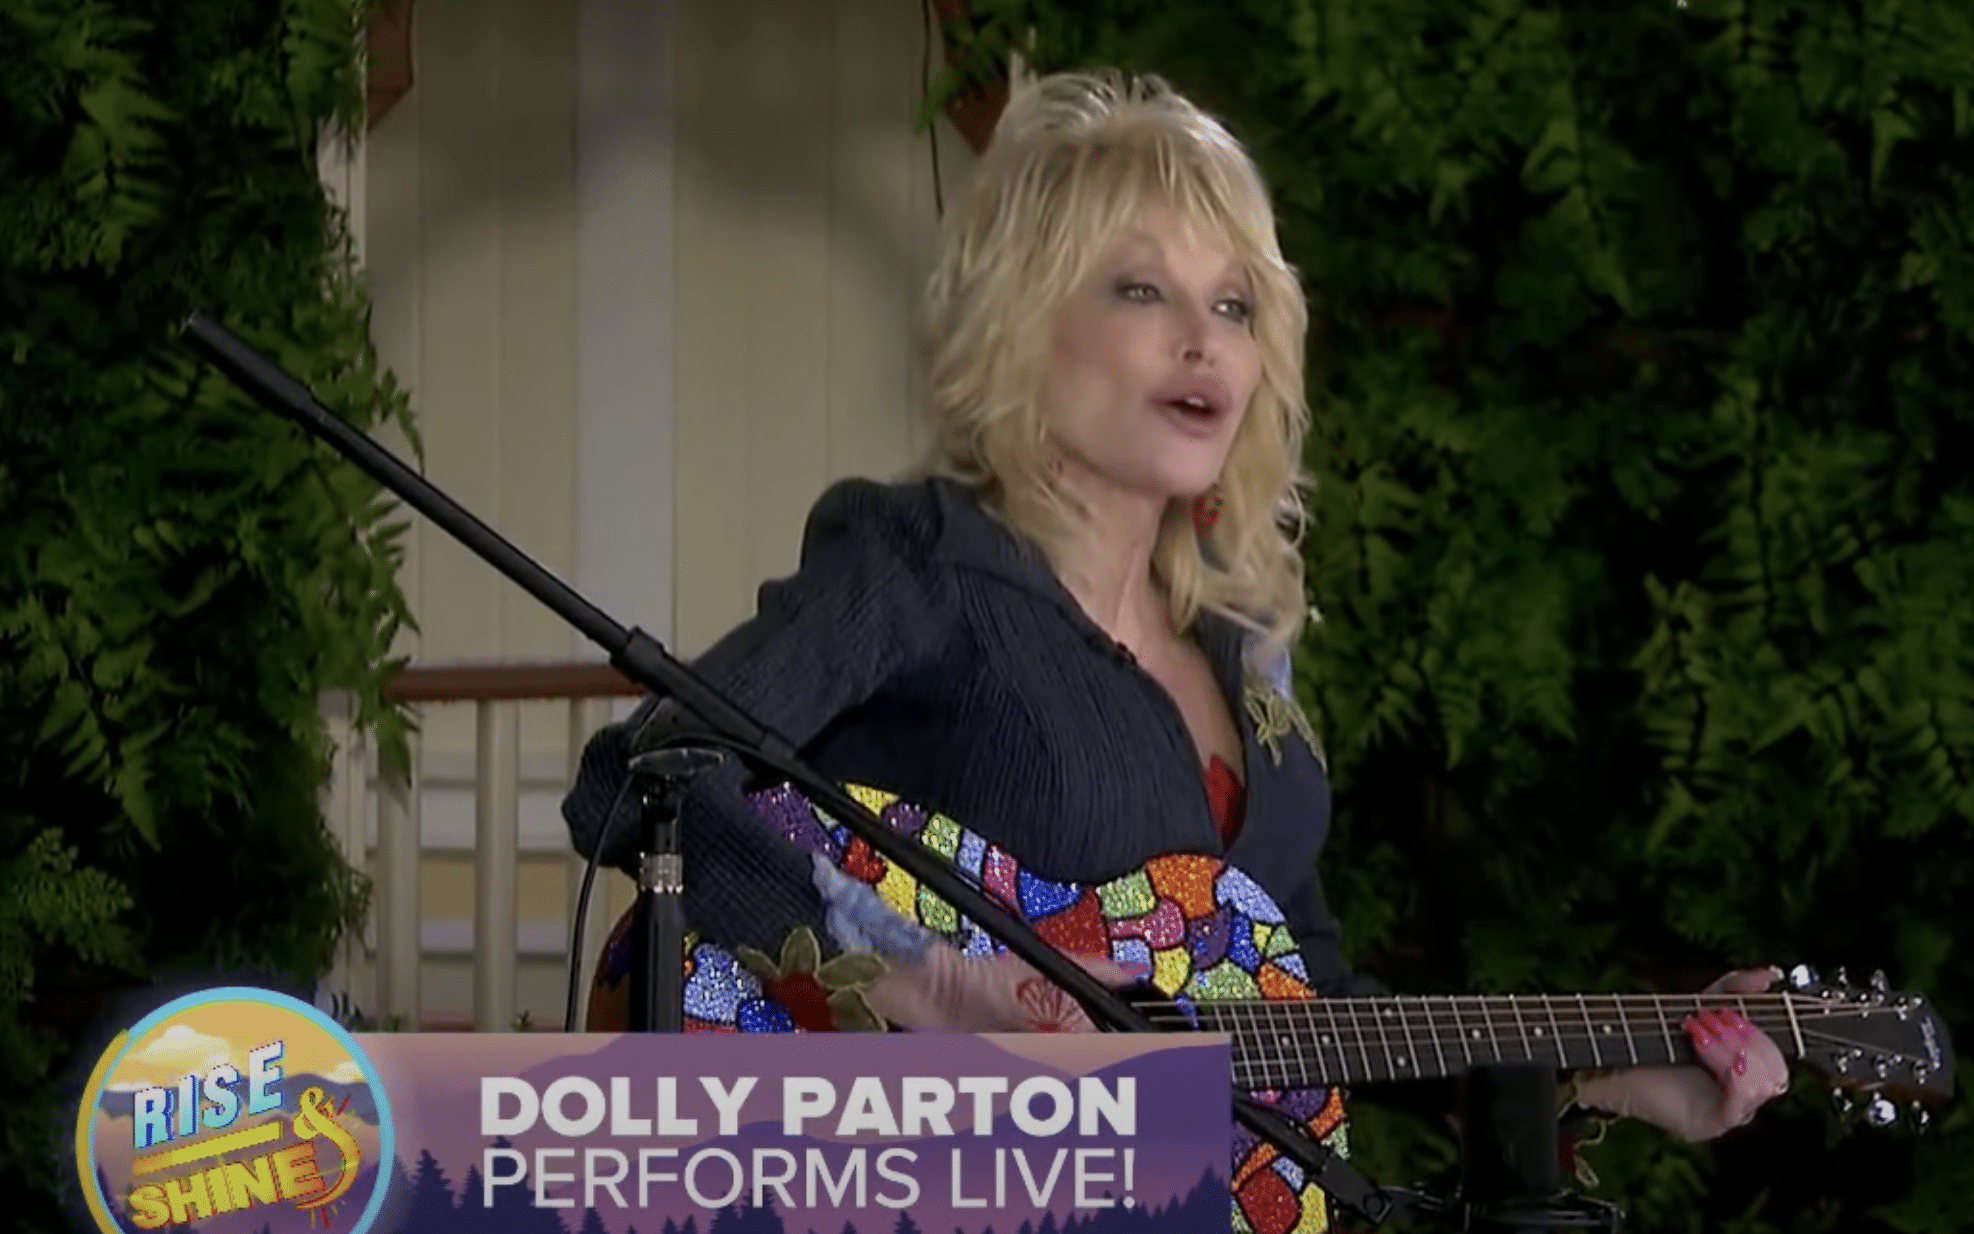 dolly parton performing coat of many colors